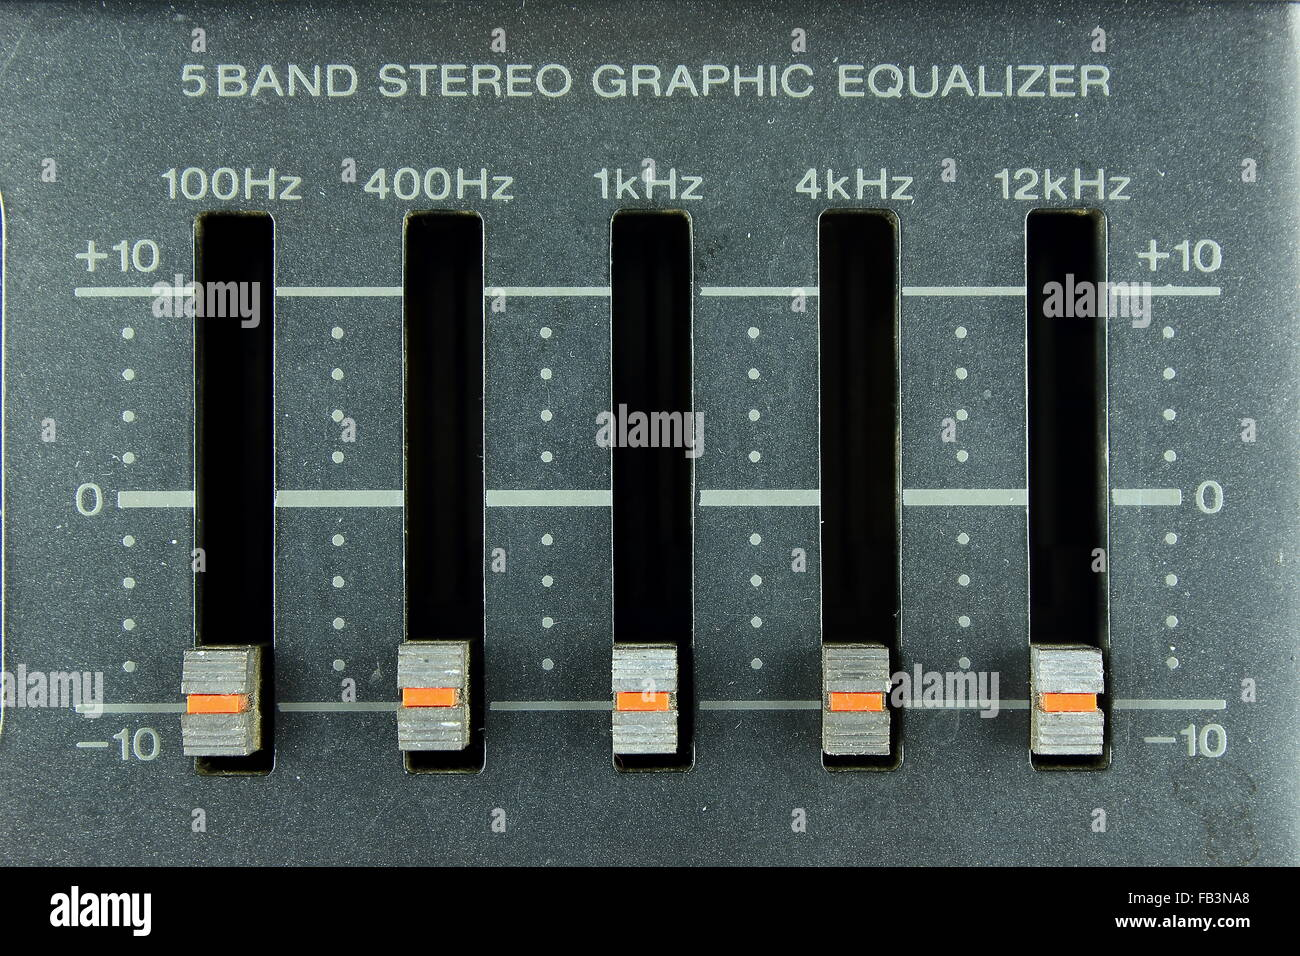 five band stereo graphic equalizer stock photo 92895664 alamy rh alamy com 5 band graphic equalizer circuit diagram 5 band graphic equalizer plug in